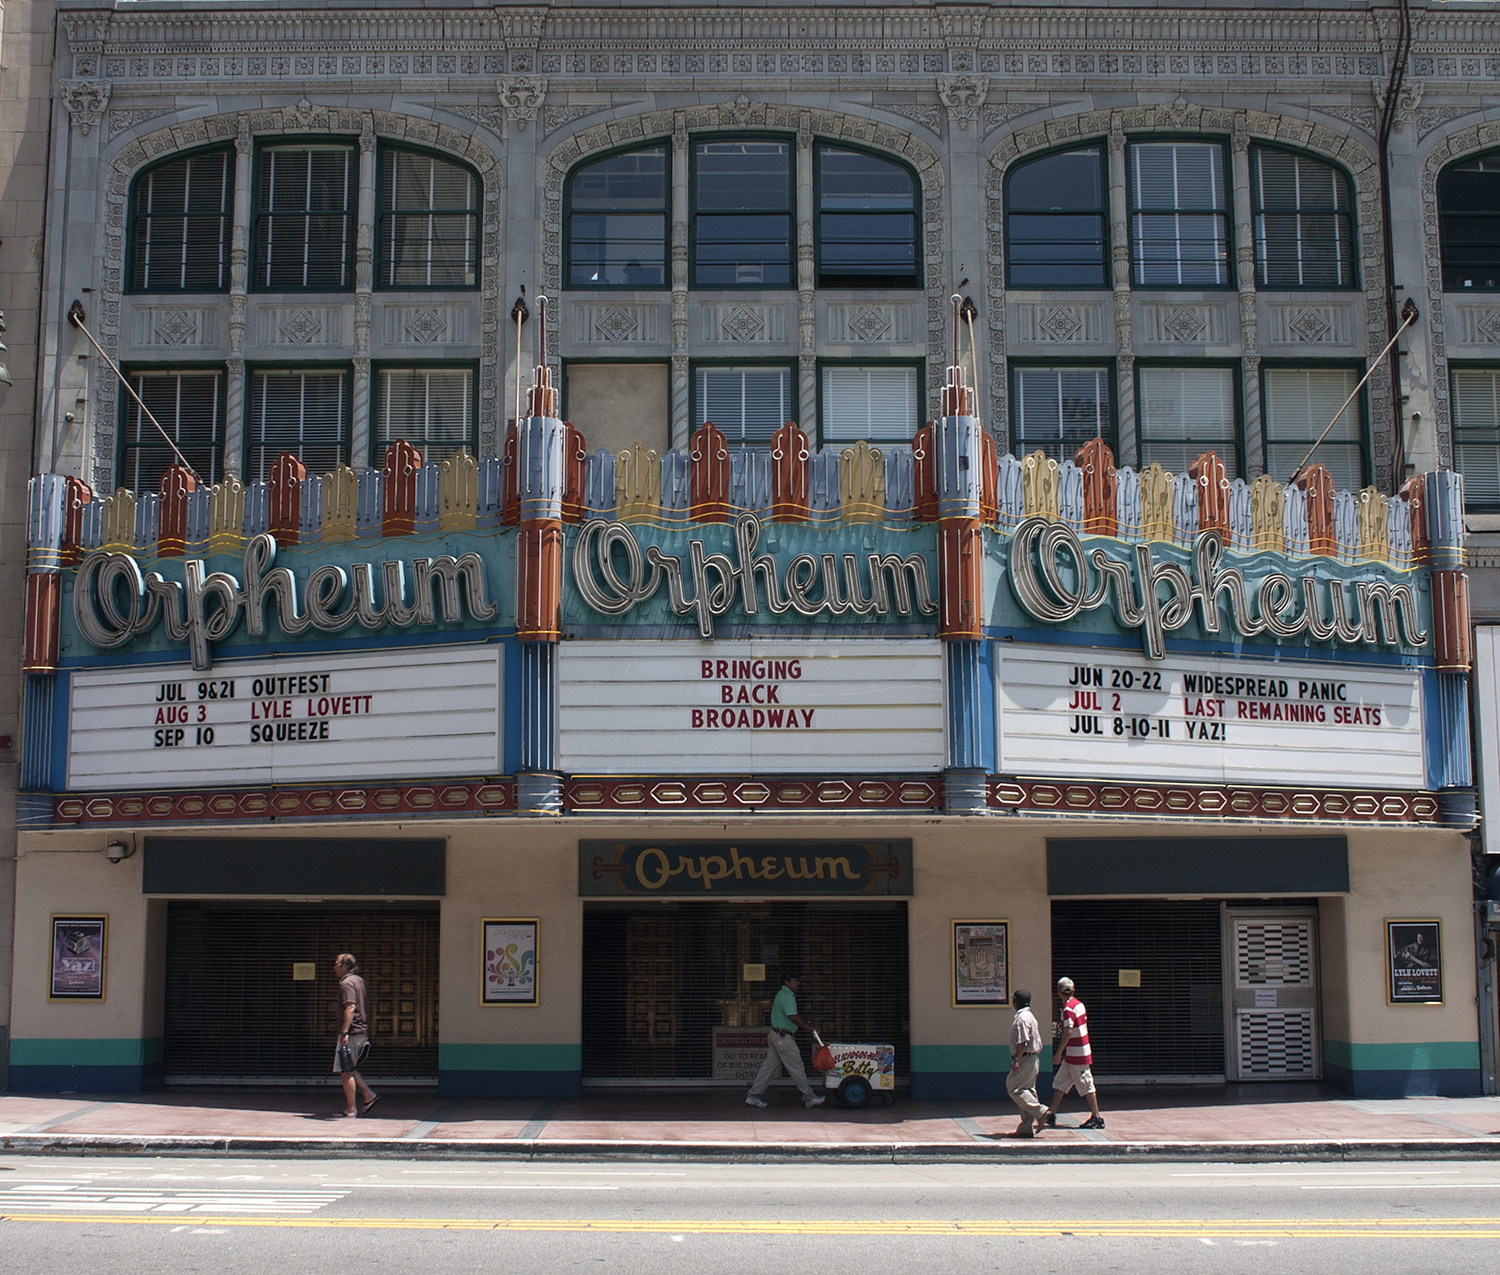 842 South Broadway, Los Angeles The Orpheum Theater and the downtown neighborhood around it were the sites of the Zoot Suit Riots, on-going street brawls that pitted Mexican American youth against military personnel and white civilians in May and June of 1943